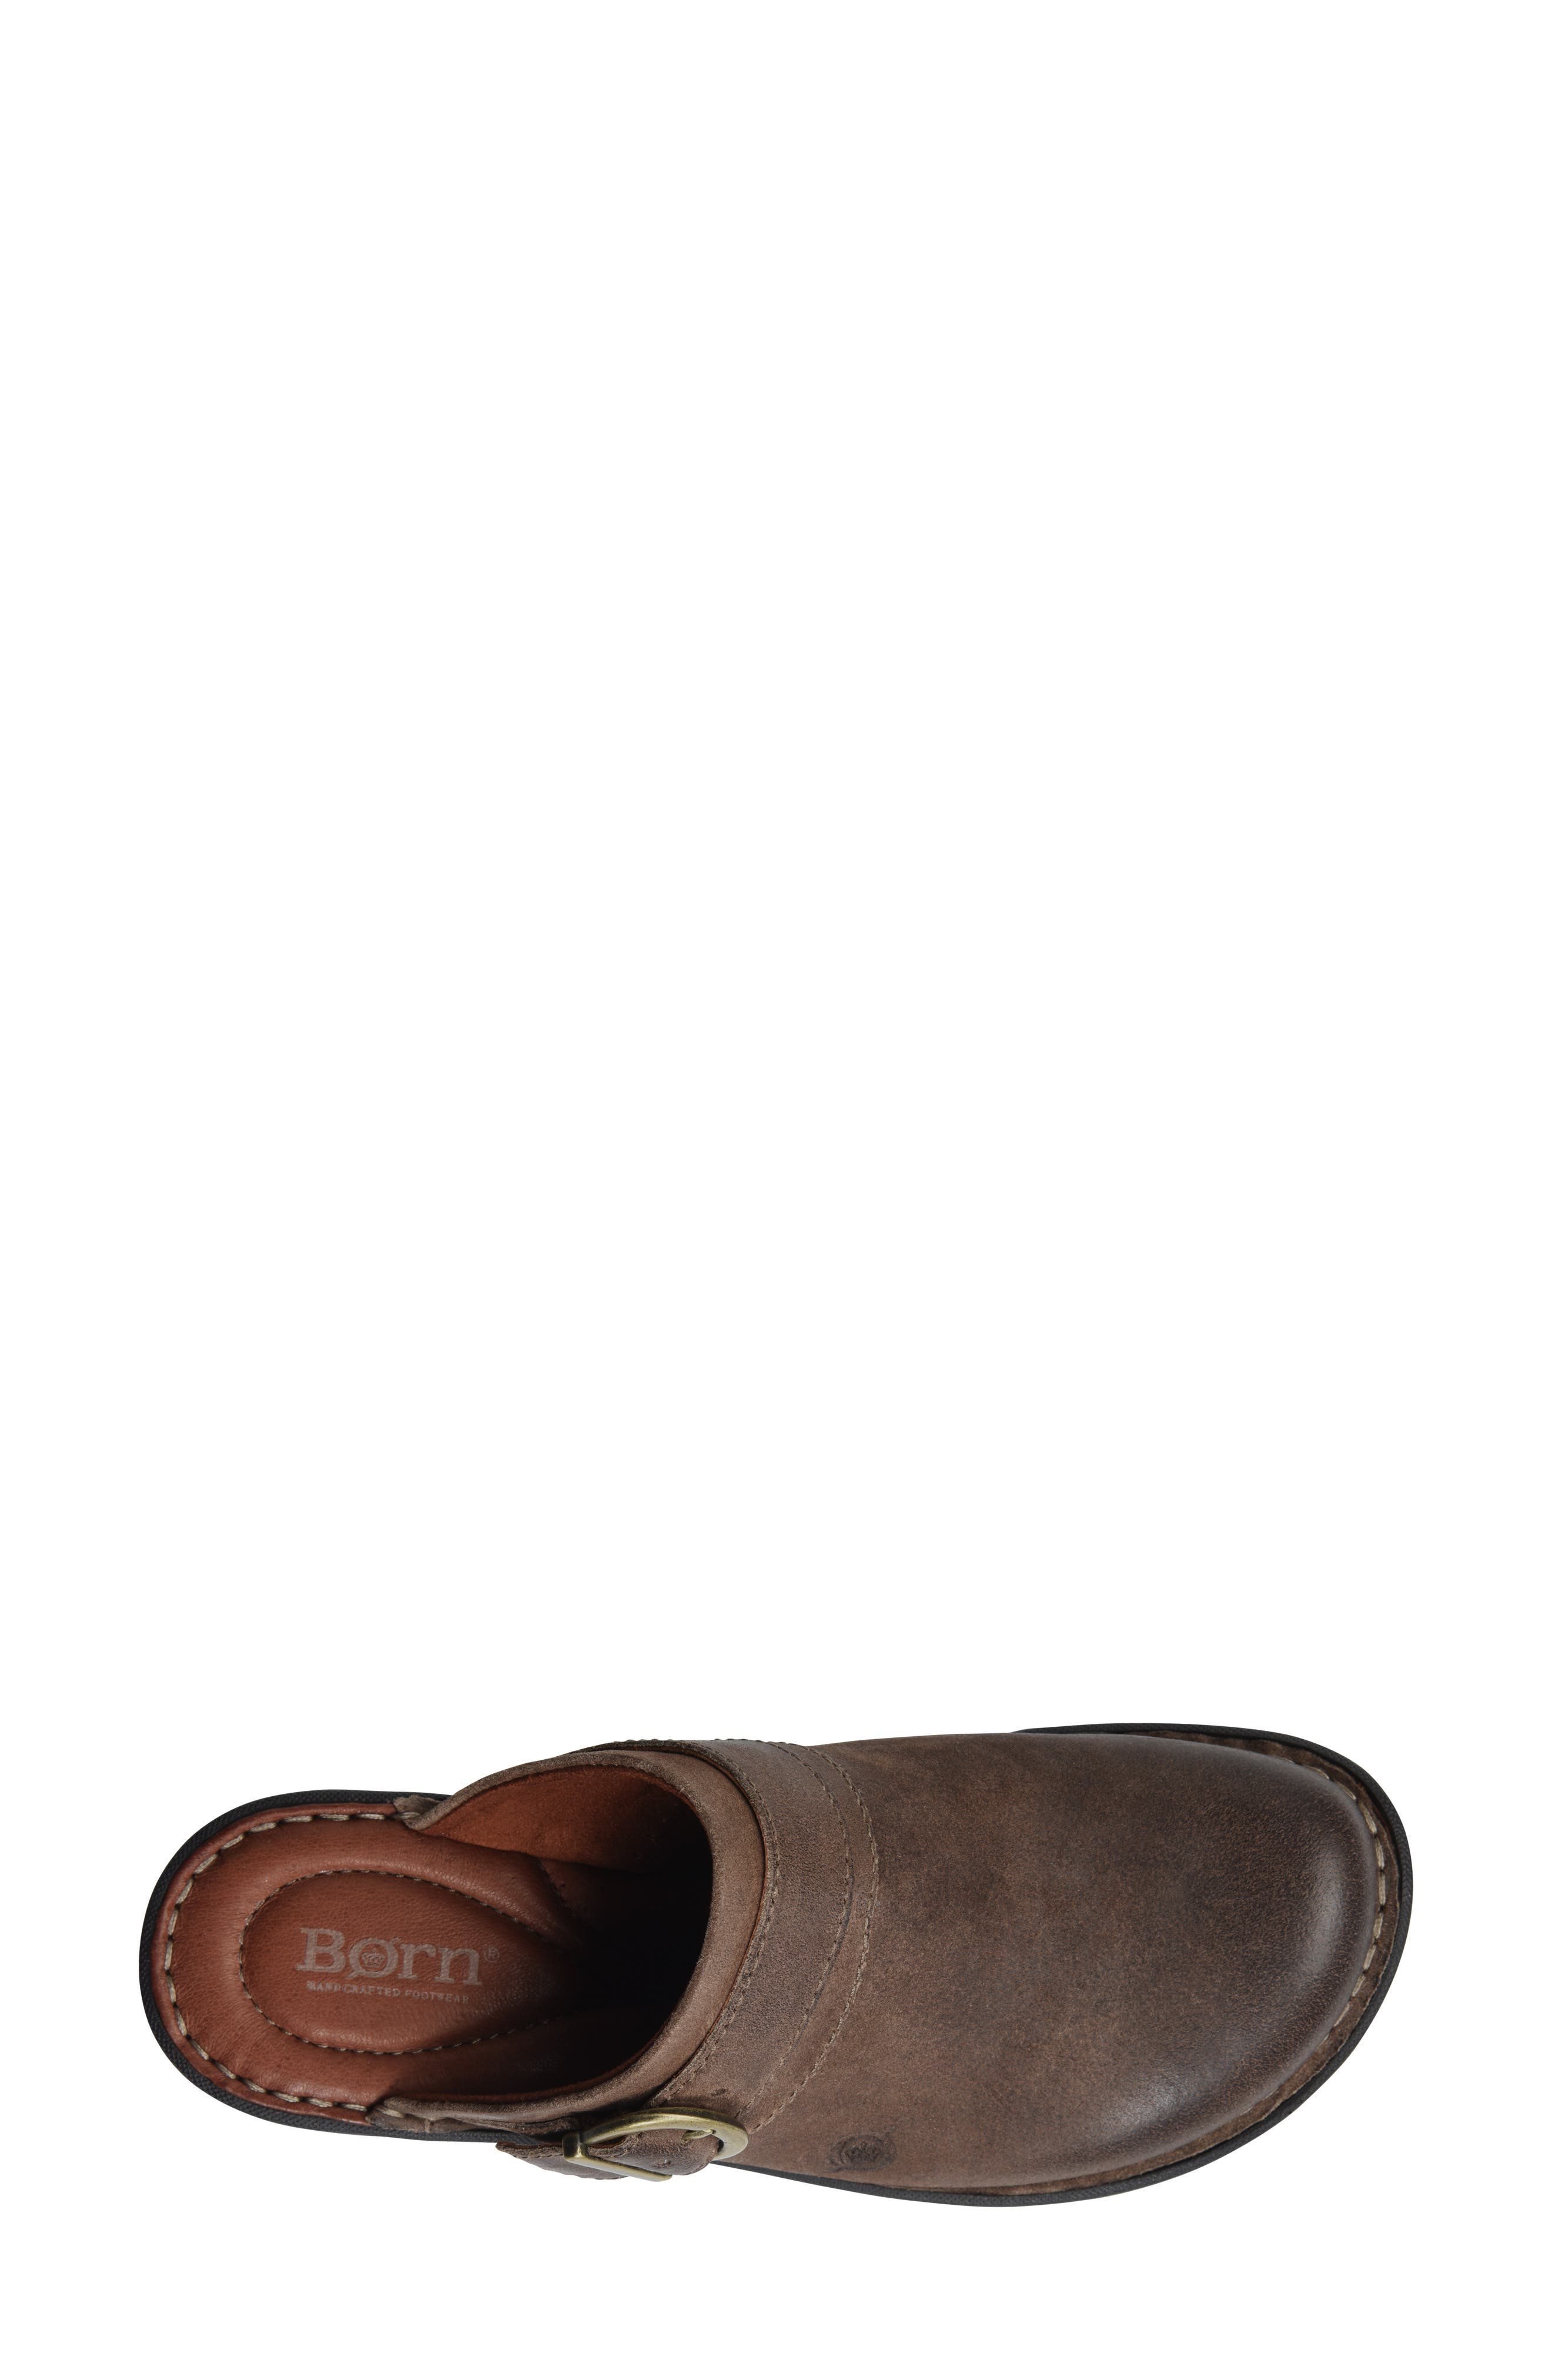 BØRN,                             Avoca Clog,                             Alternate thumbnail 5, color,                             TAUPE DISTRESSED LEATHER